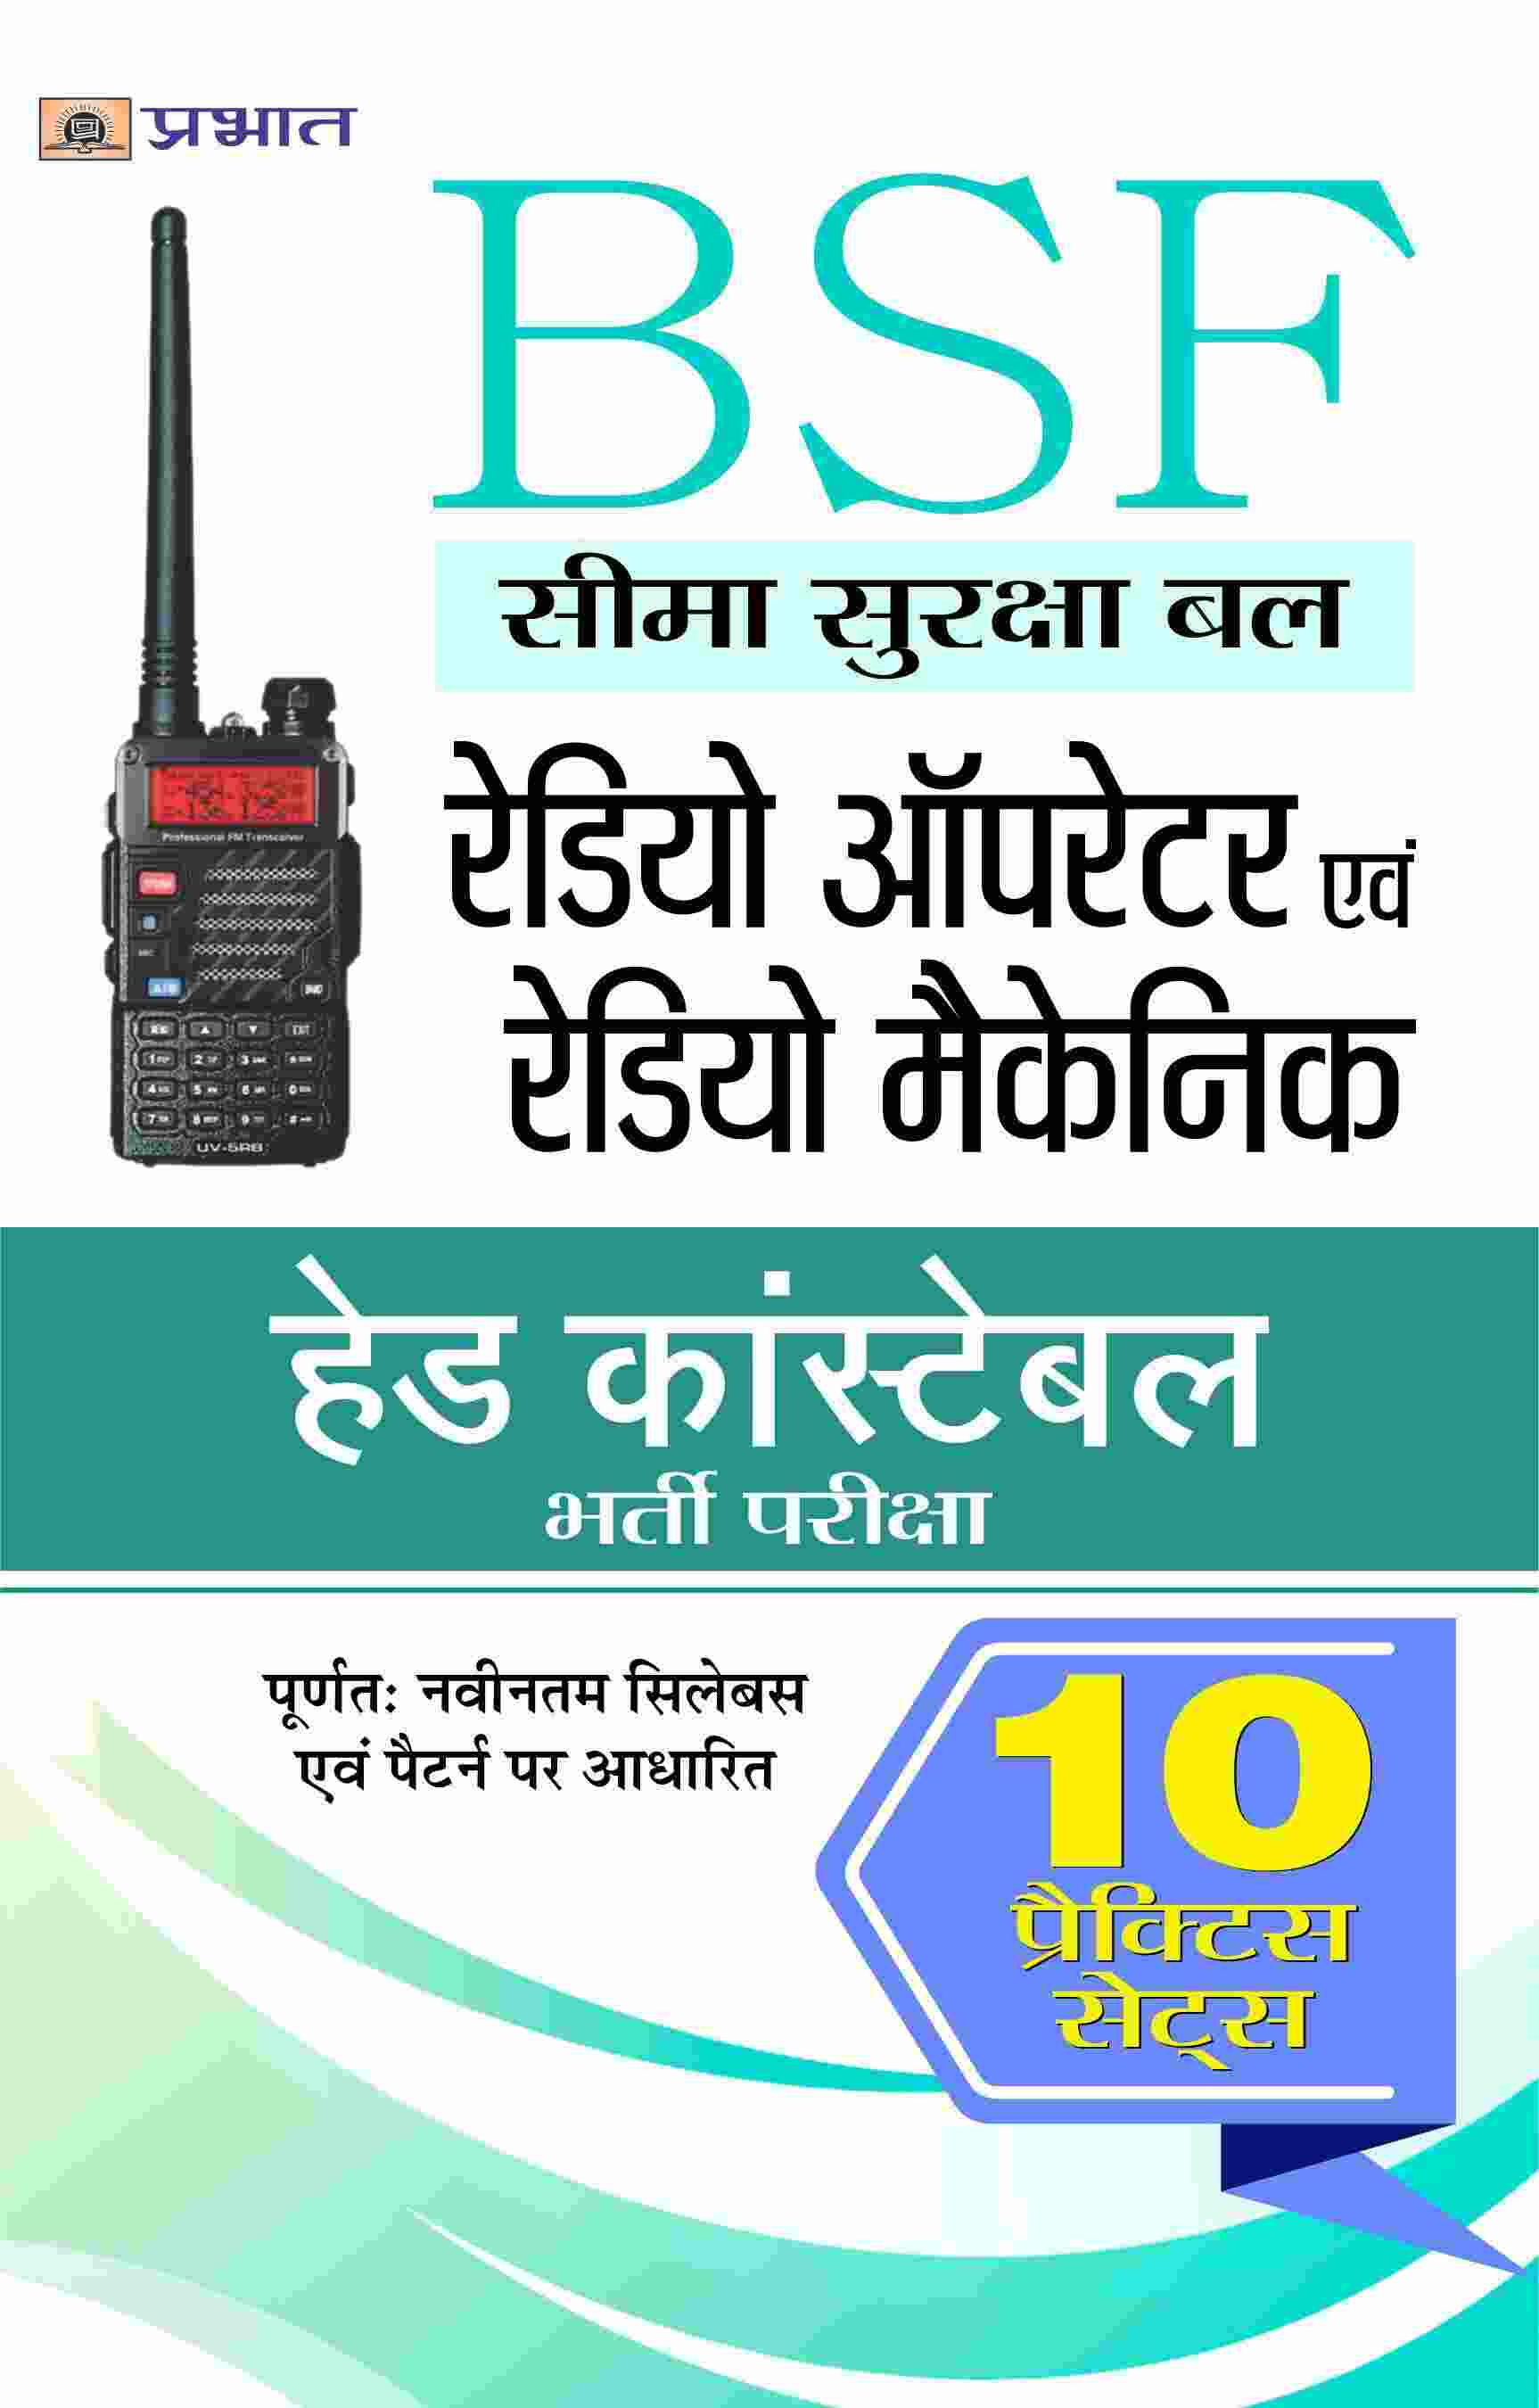 BSF Seema Suraksha Bal Radio Operator Evam Radio Mechanical Head Const...